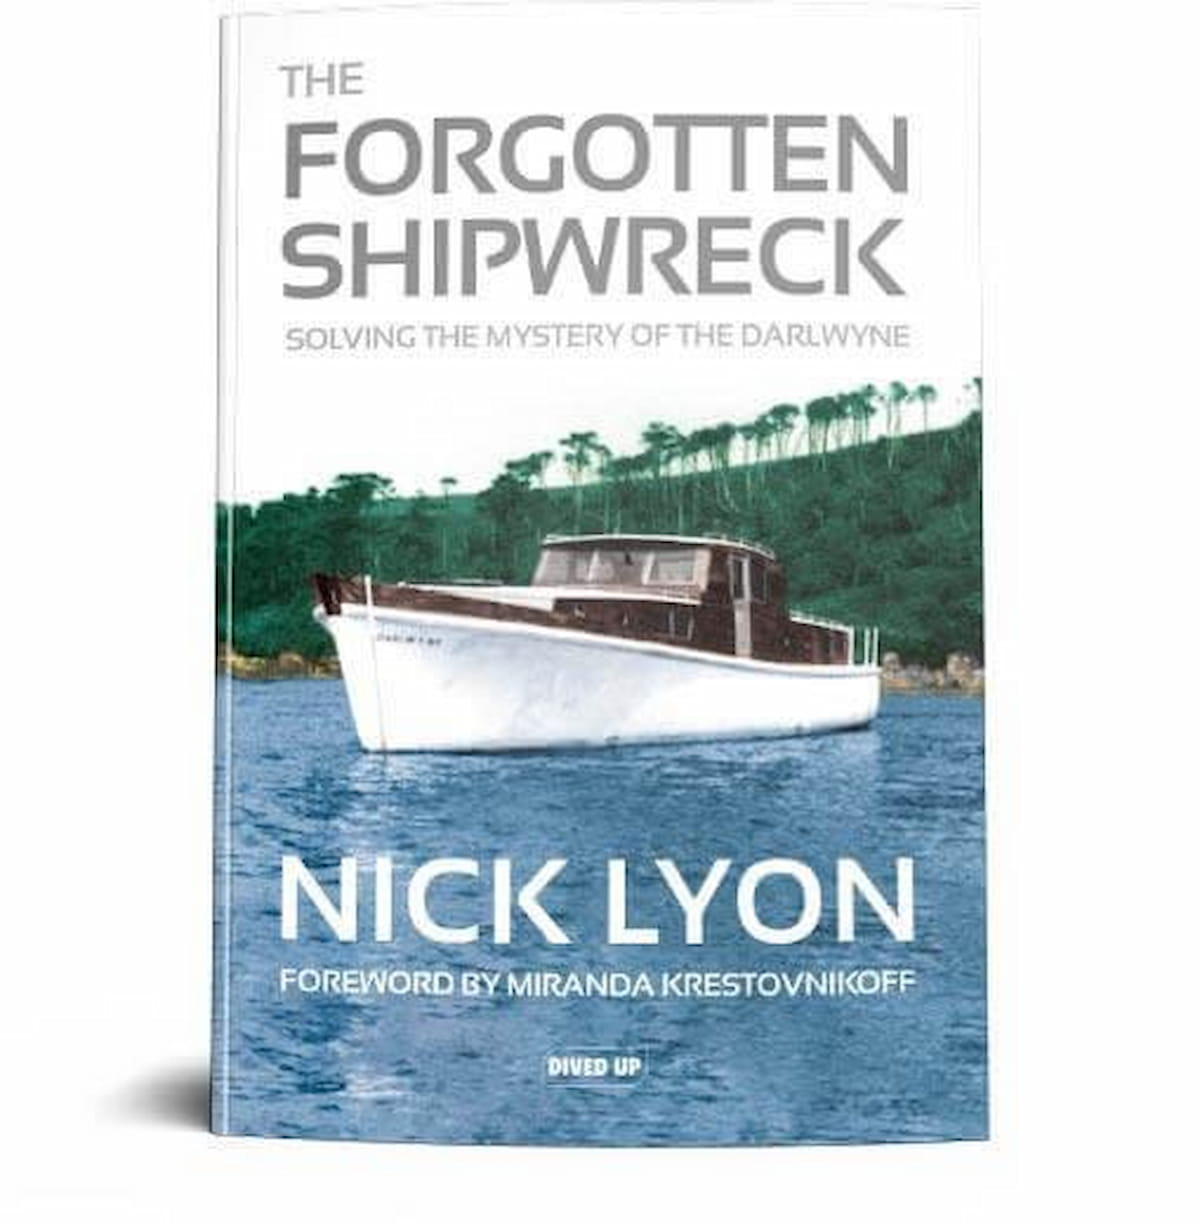 The Forgotten Shipwreck Solving the mystery of the darlwyne by nick lyon